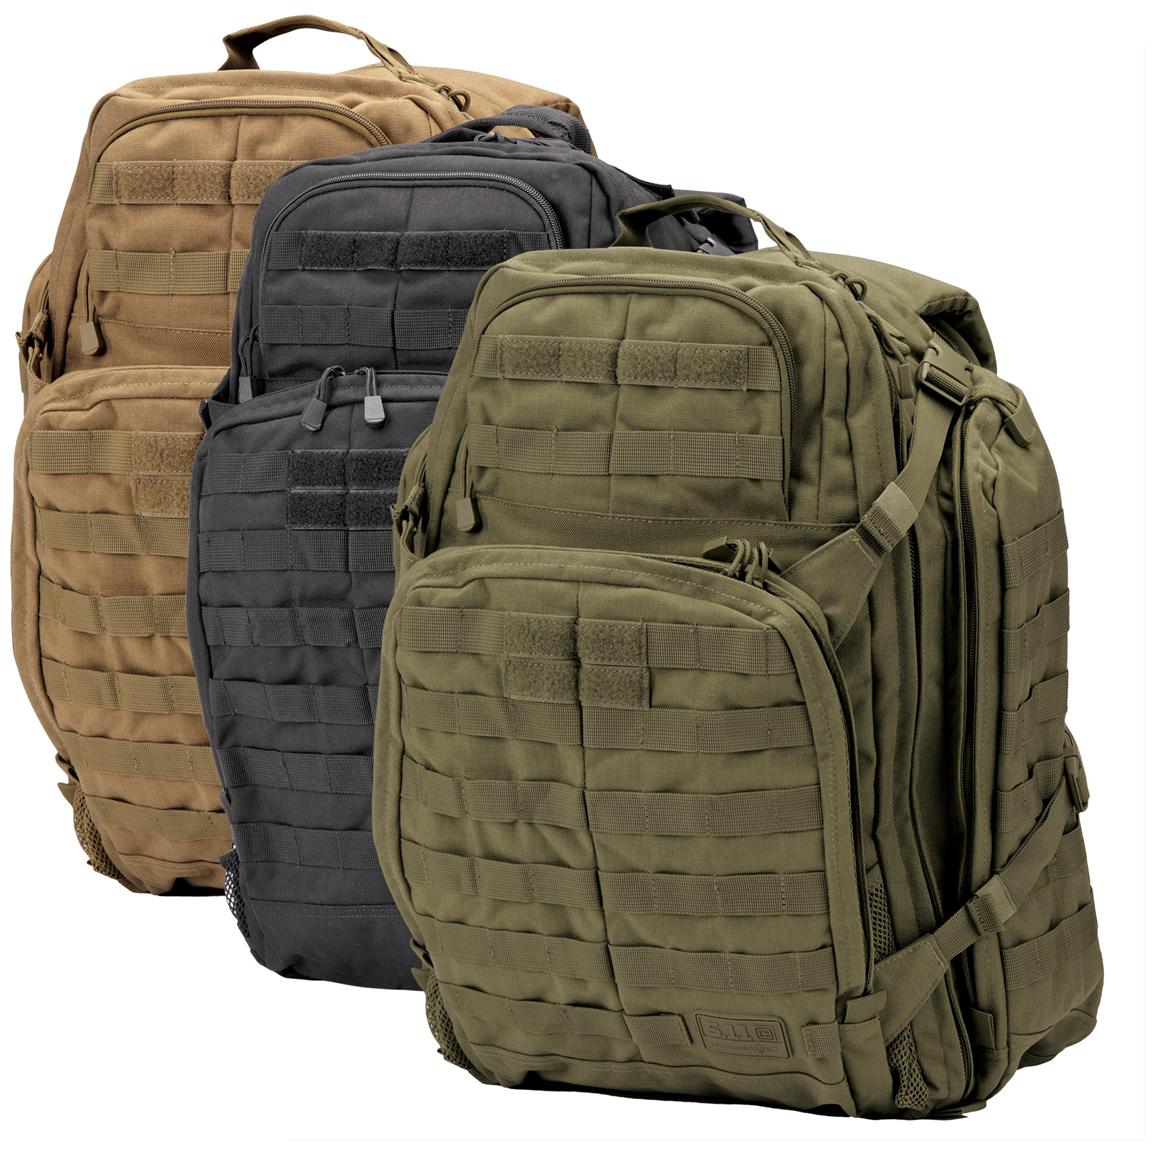 5.11 Tactical® Rush 72 Backpack